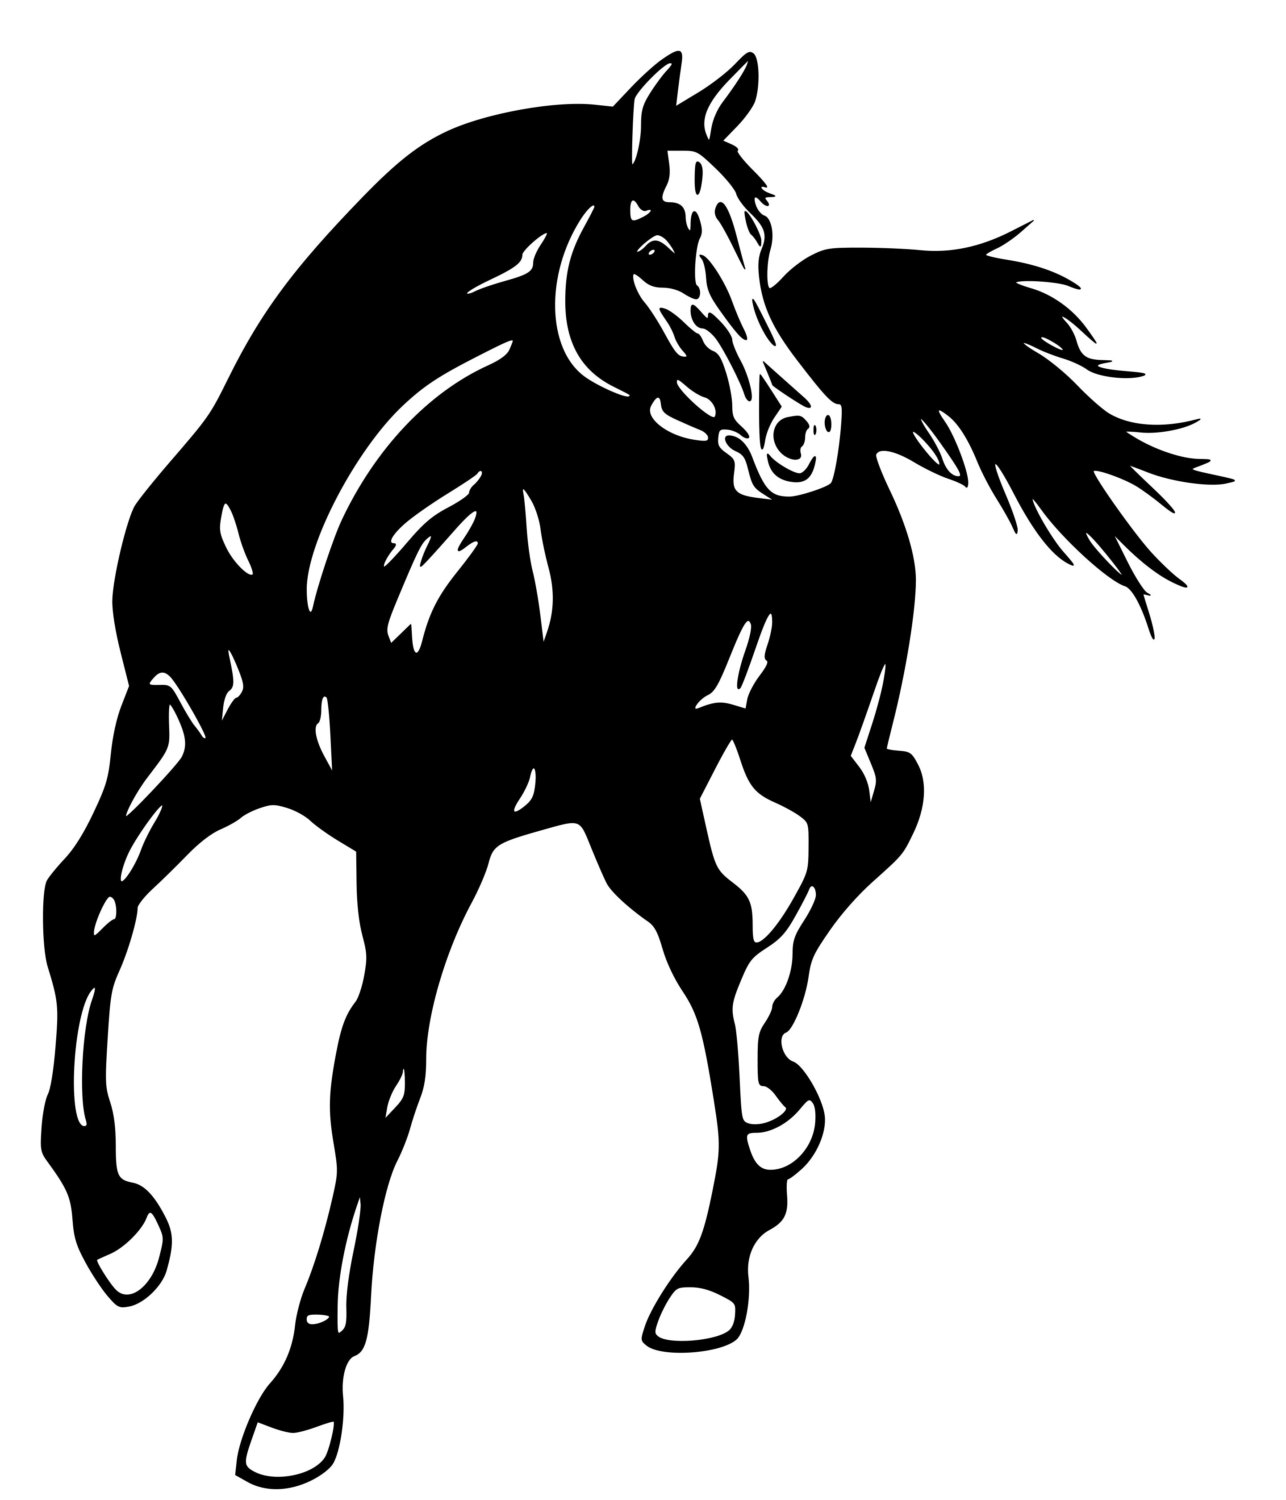 1286x1500 Horse Arabian Horse Wall Decal Horse Sticker 28 Inches X 29